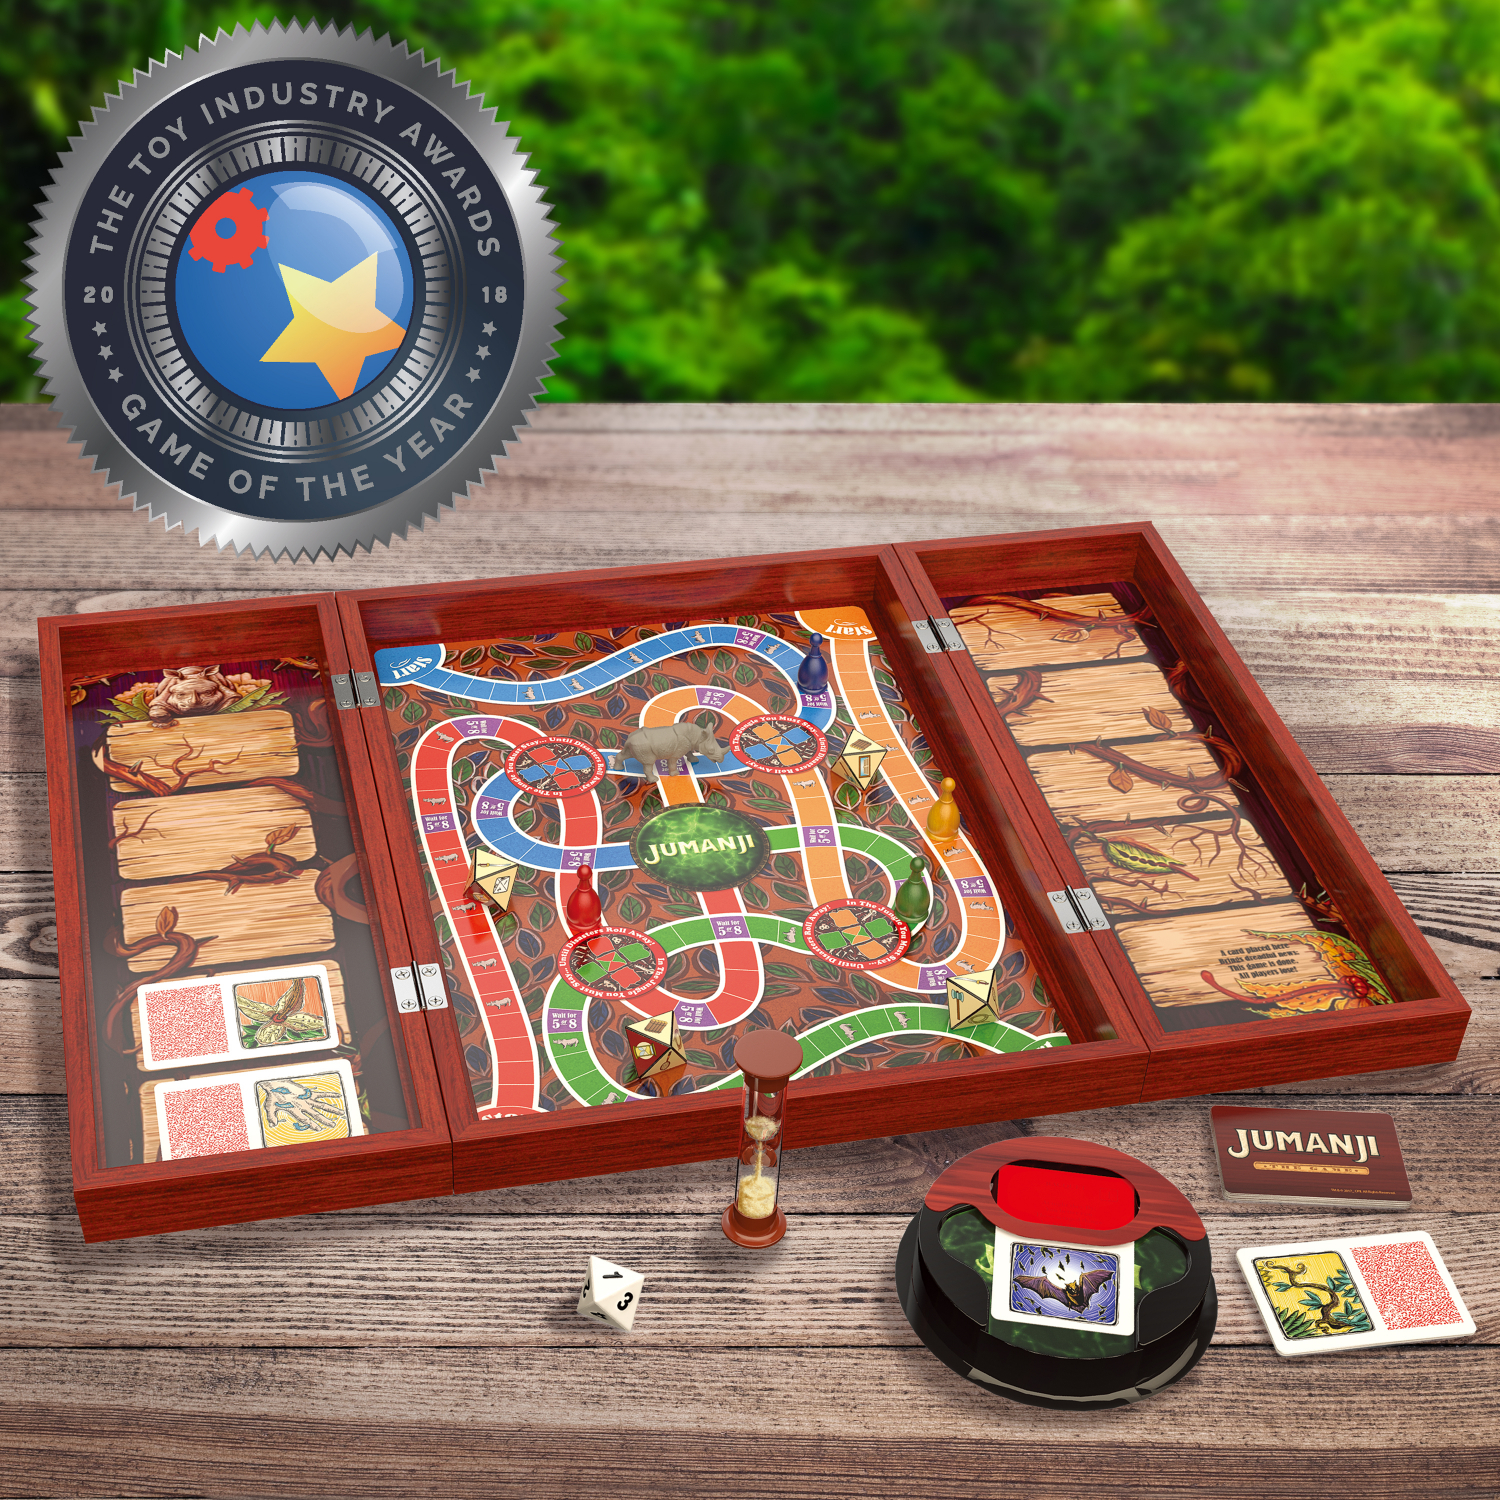 Details About Jumanji The Game In Real Wooden Box Toys Puzzles Board Games Fun Family